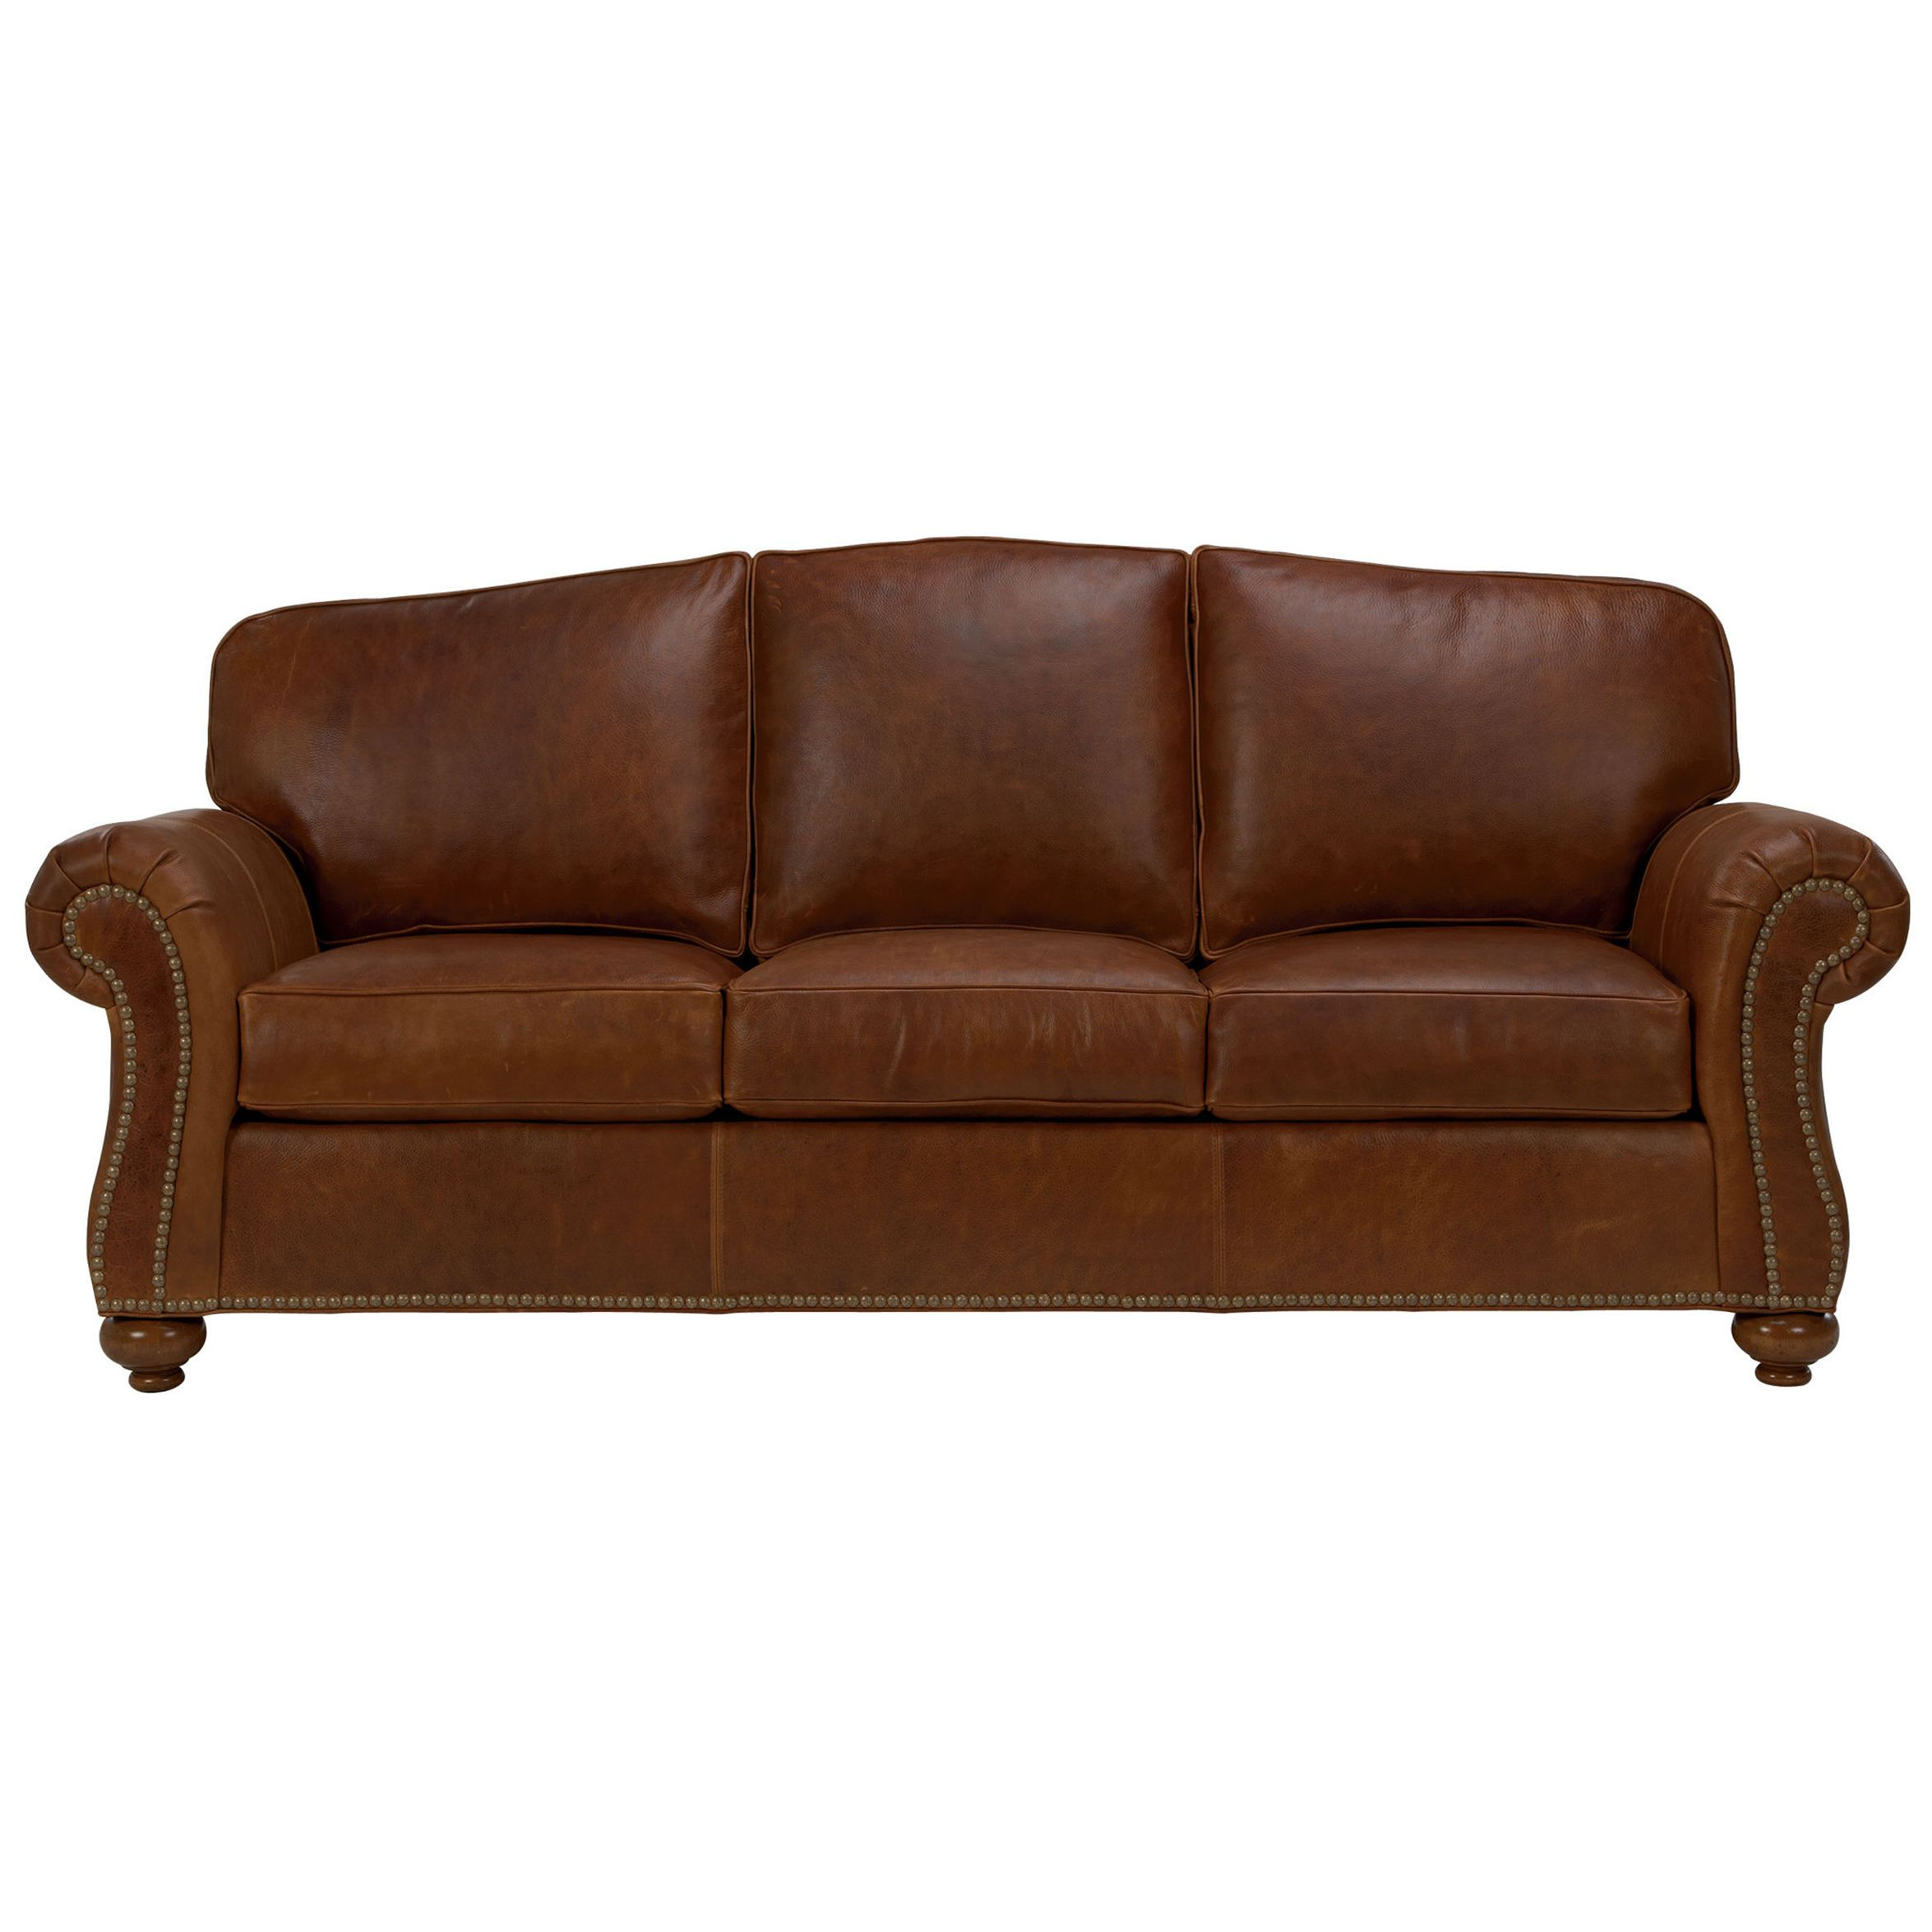 Robinson And Leather Sofa Zuo Okay This Is Just Lovely Whitney Ethan